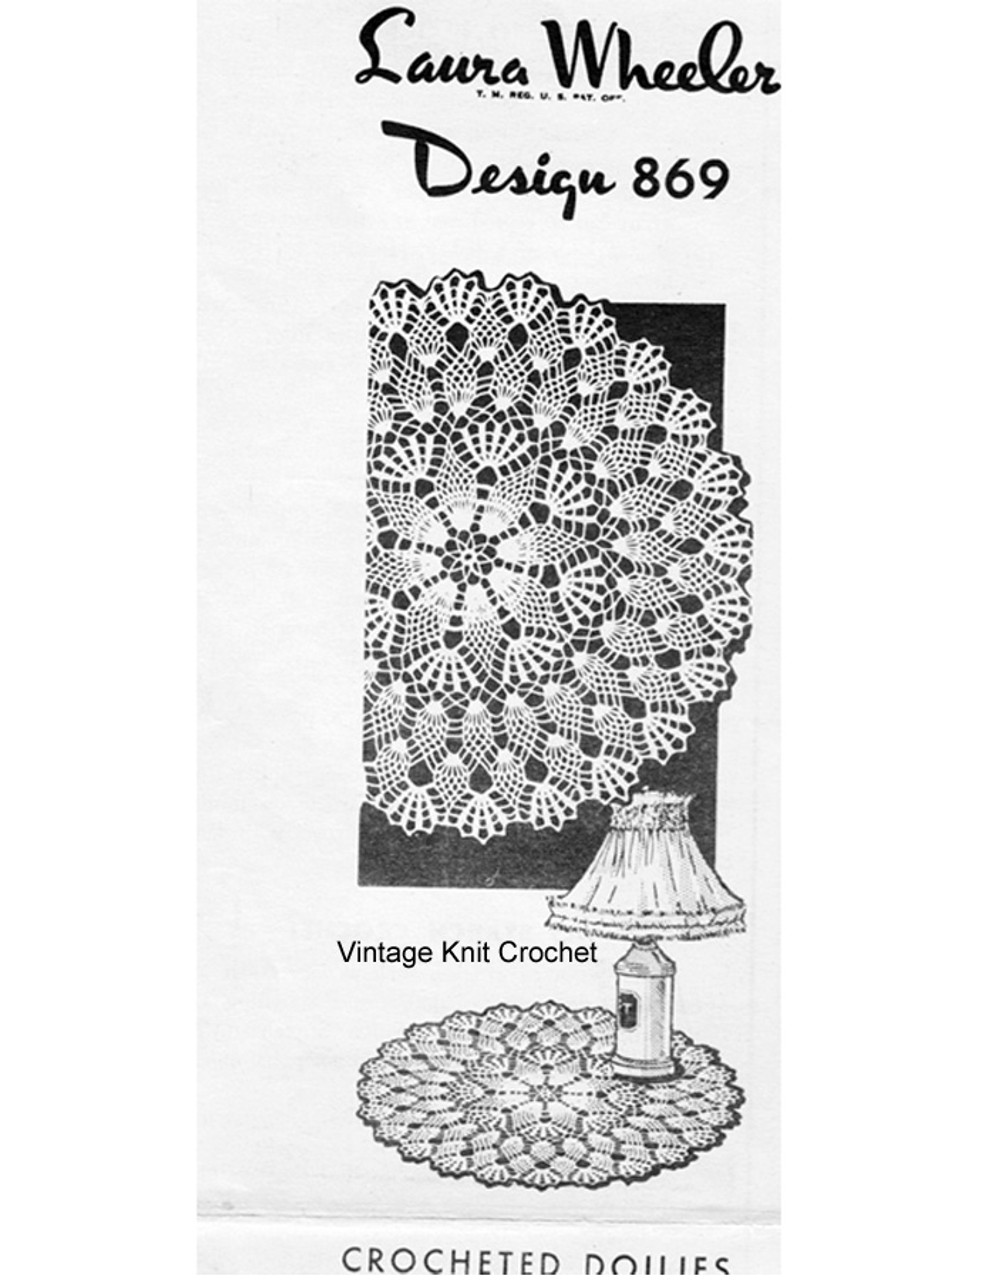 Crocheted Large Small Pineapple Doily Pattern, Laura Wheeler 869